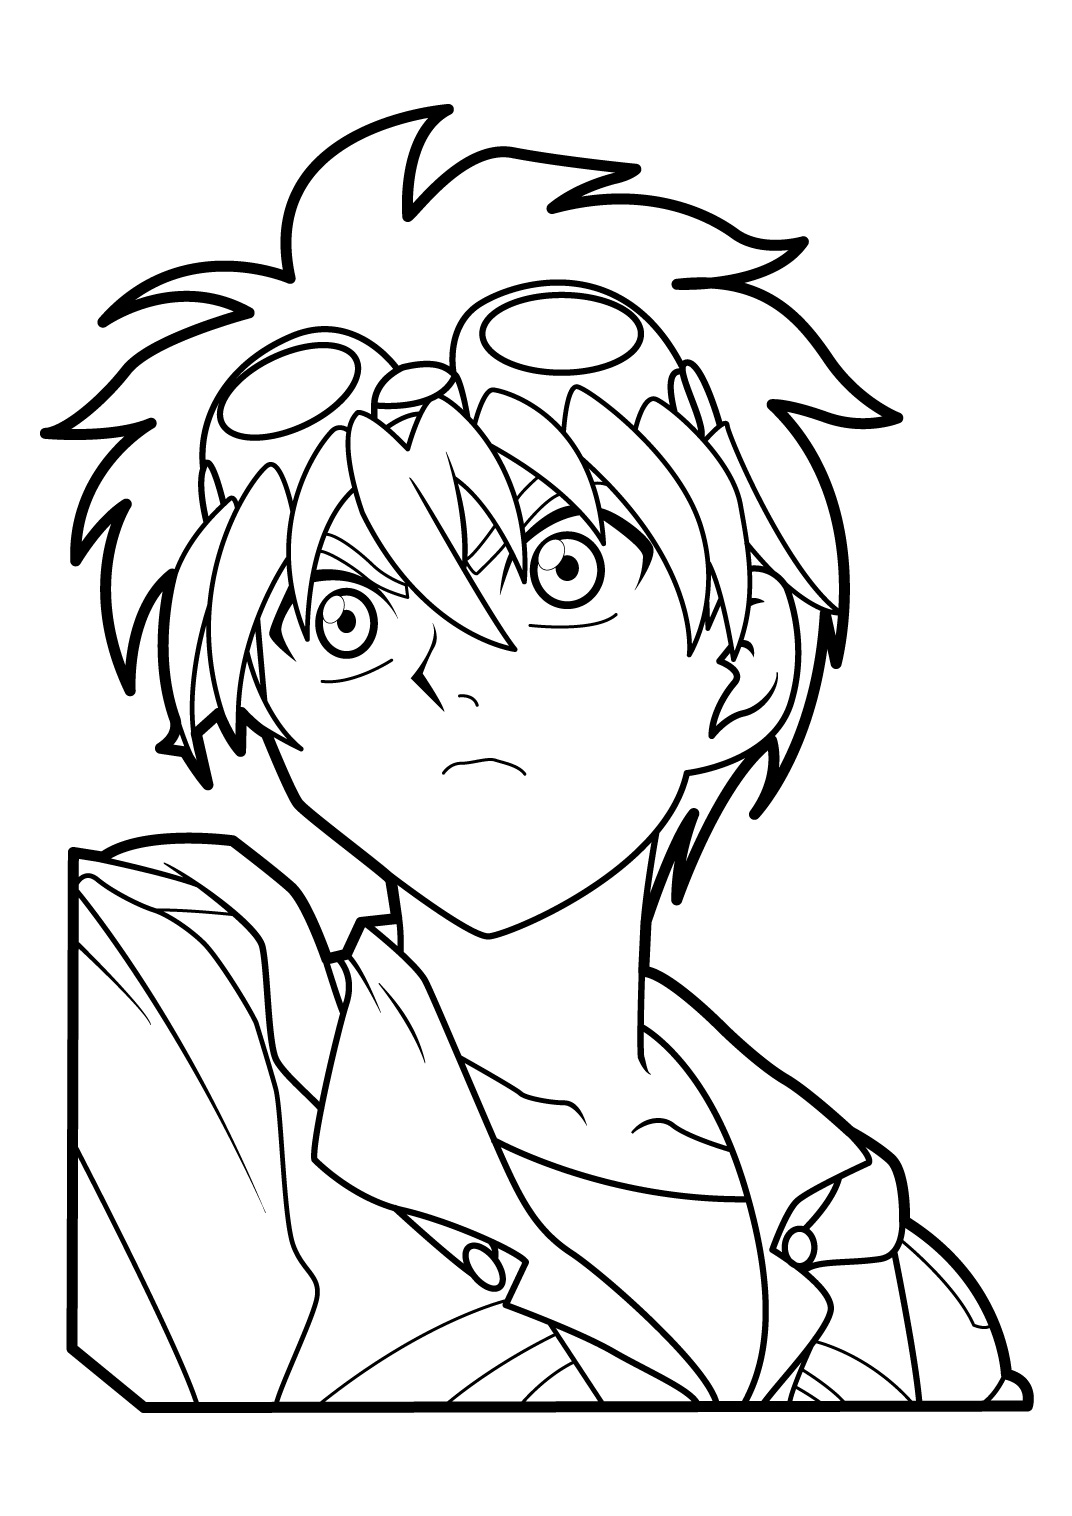 Bakugan coloring pages murderthestout for Bakugan coloring book pages